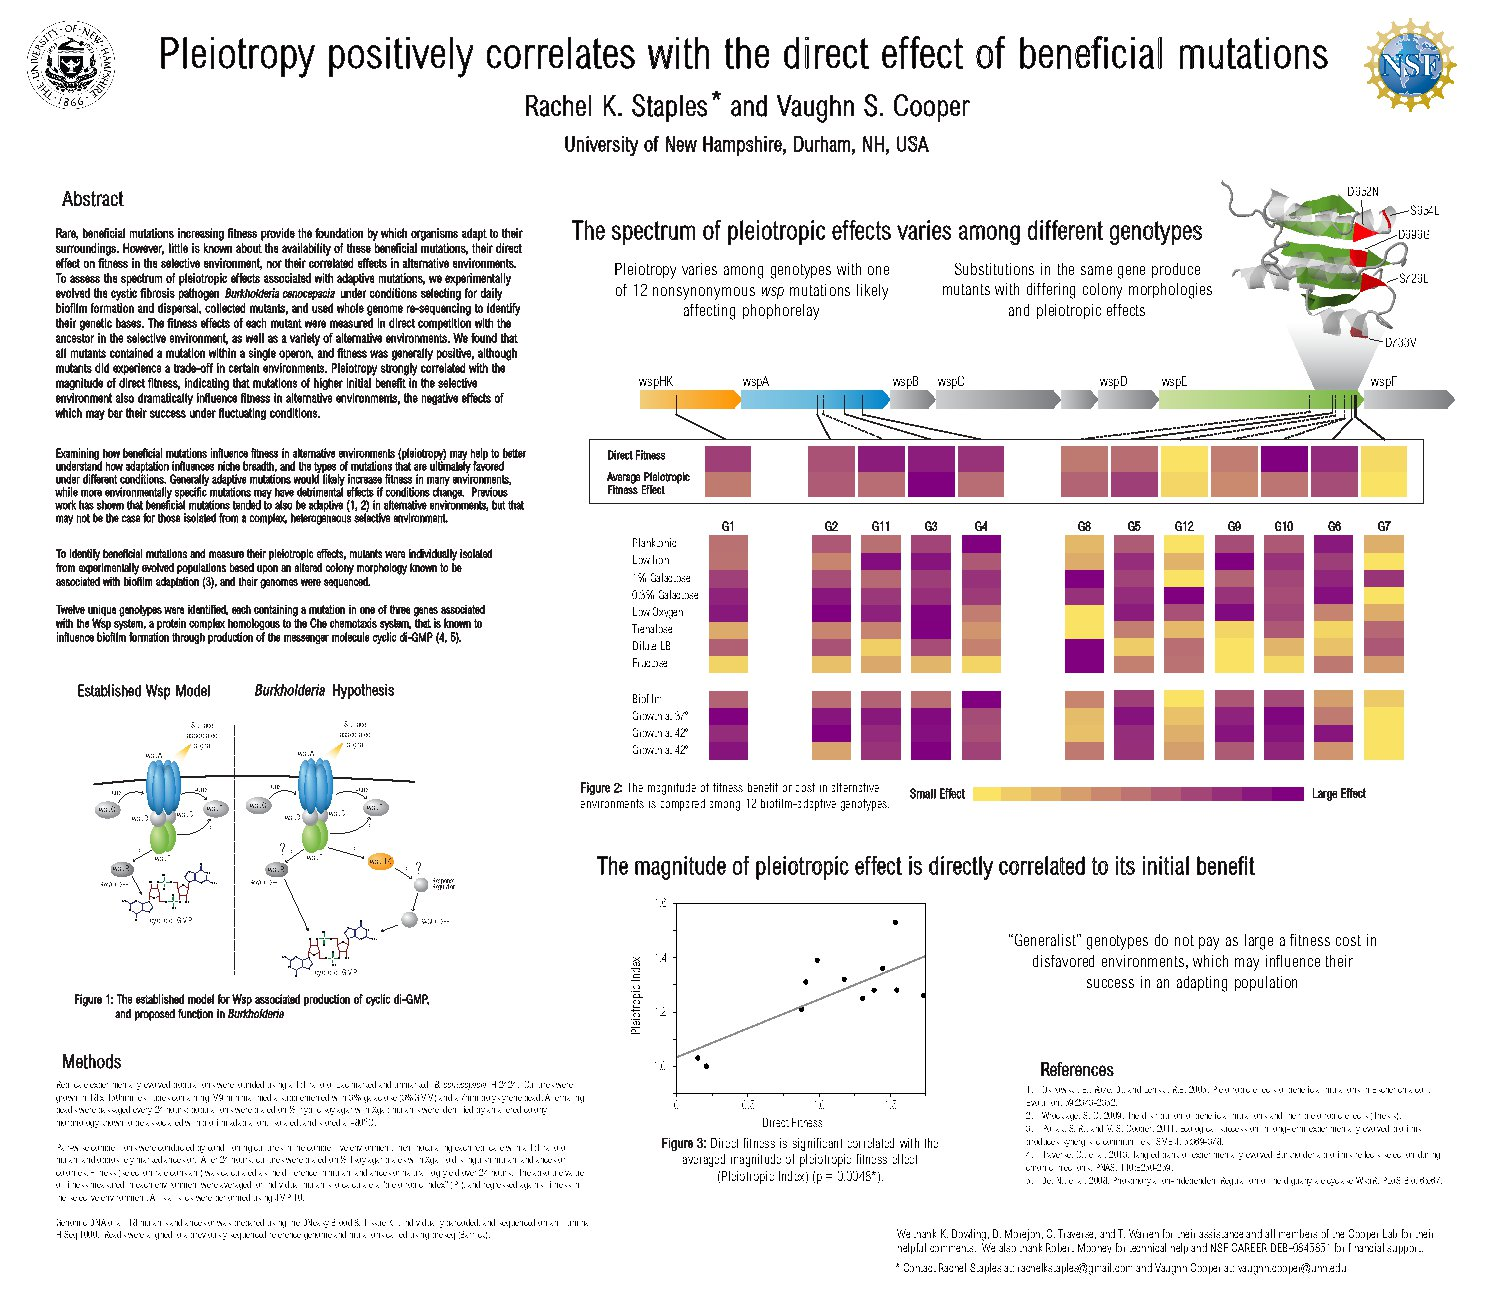 Pleiotropy Positively Correlates With The Direct Effect Of Beneficial Mutations by rs7